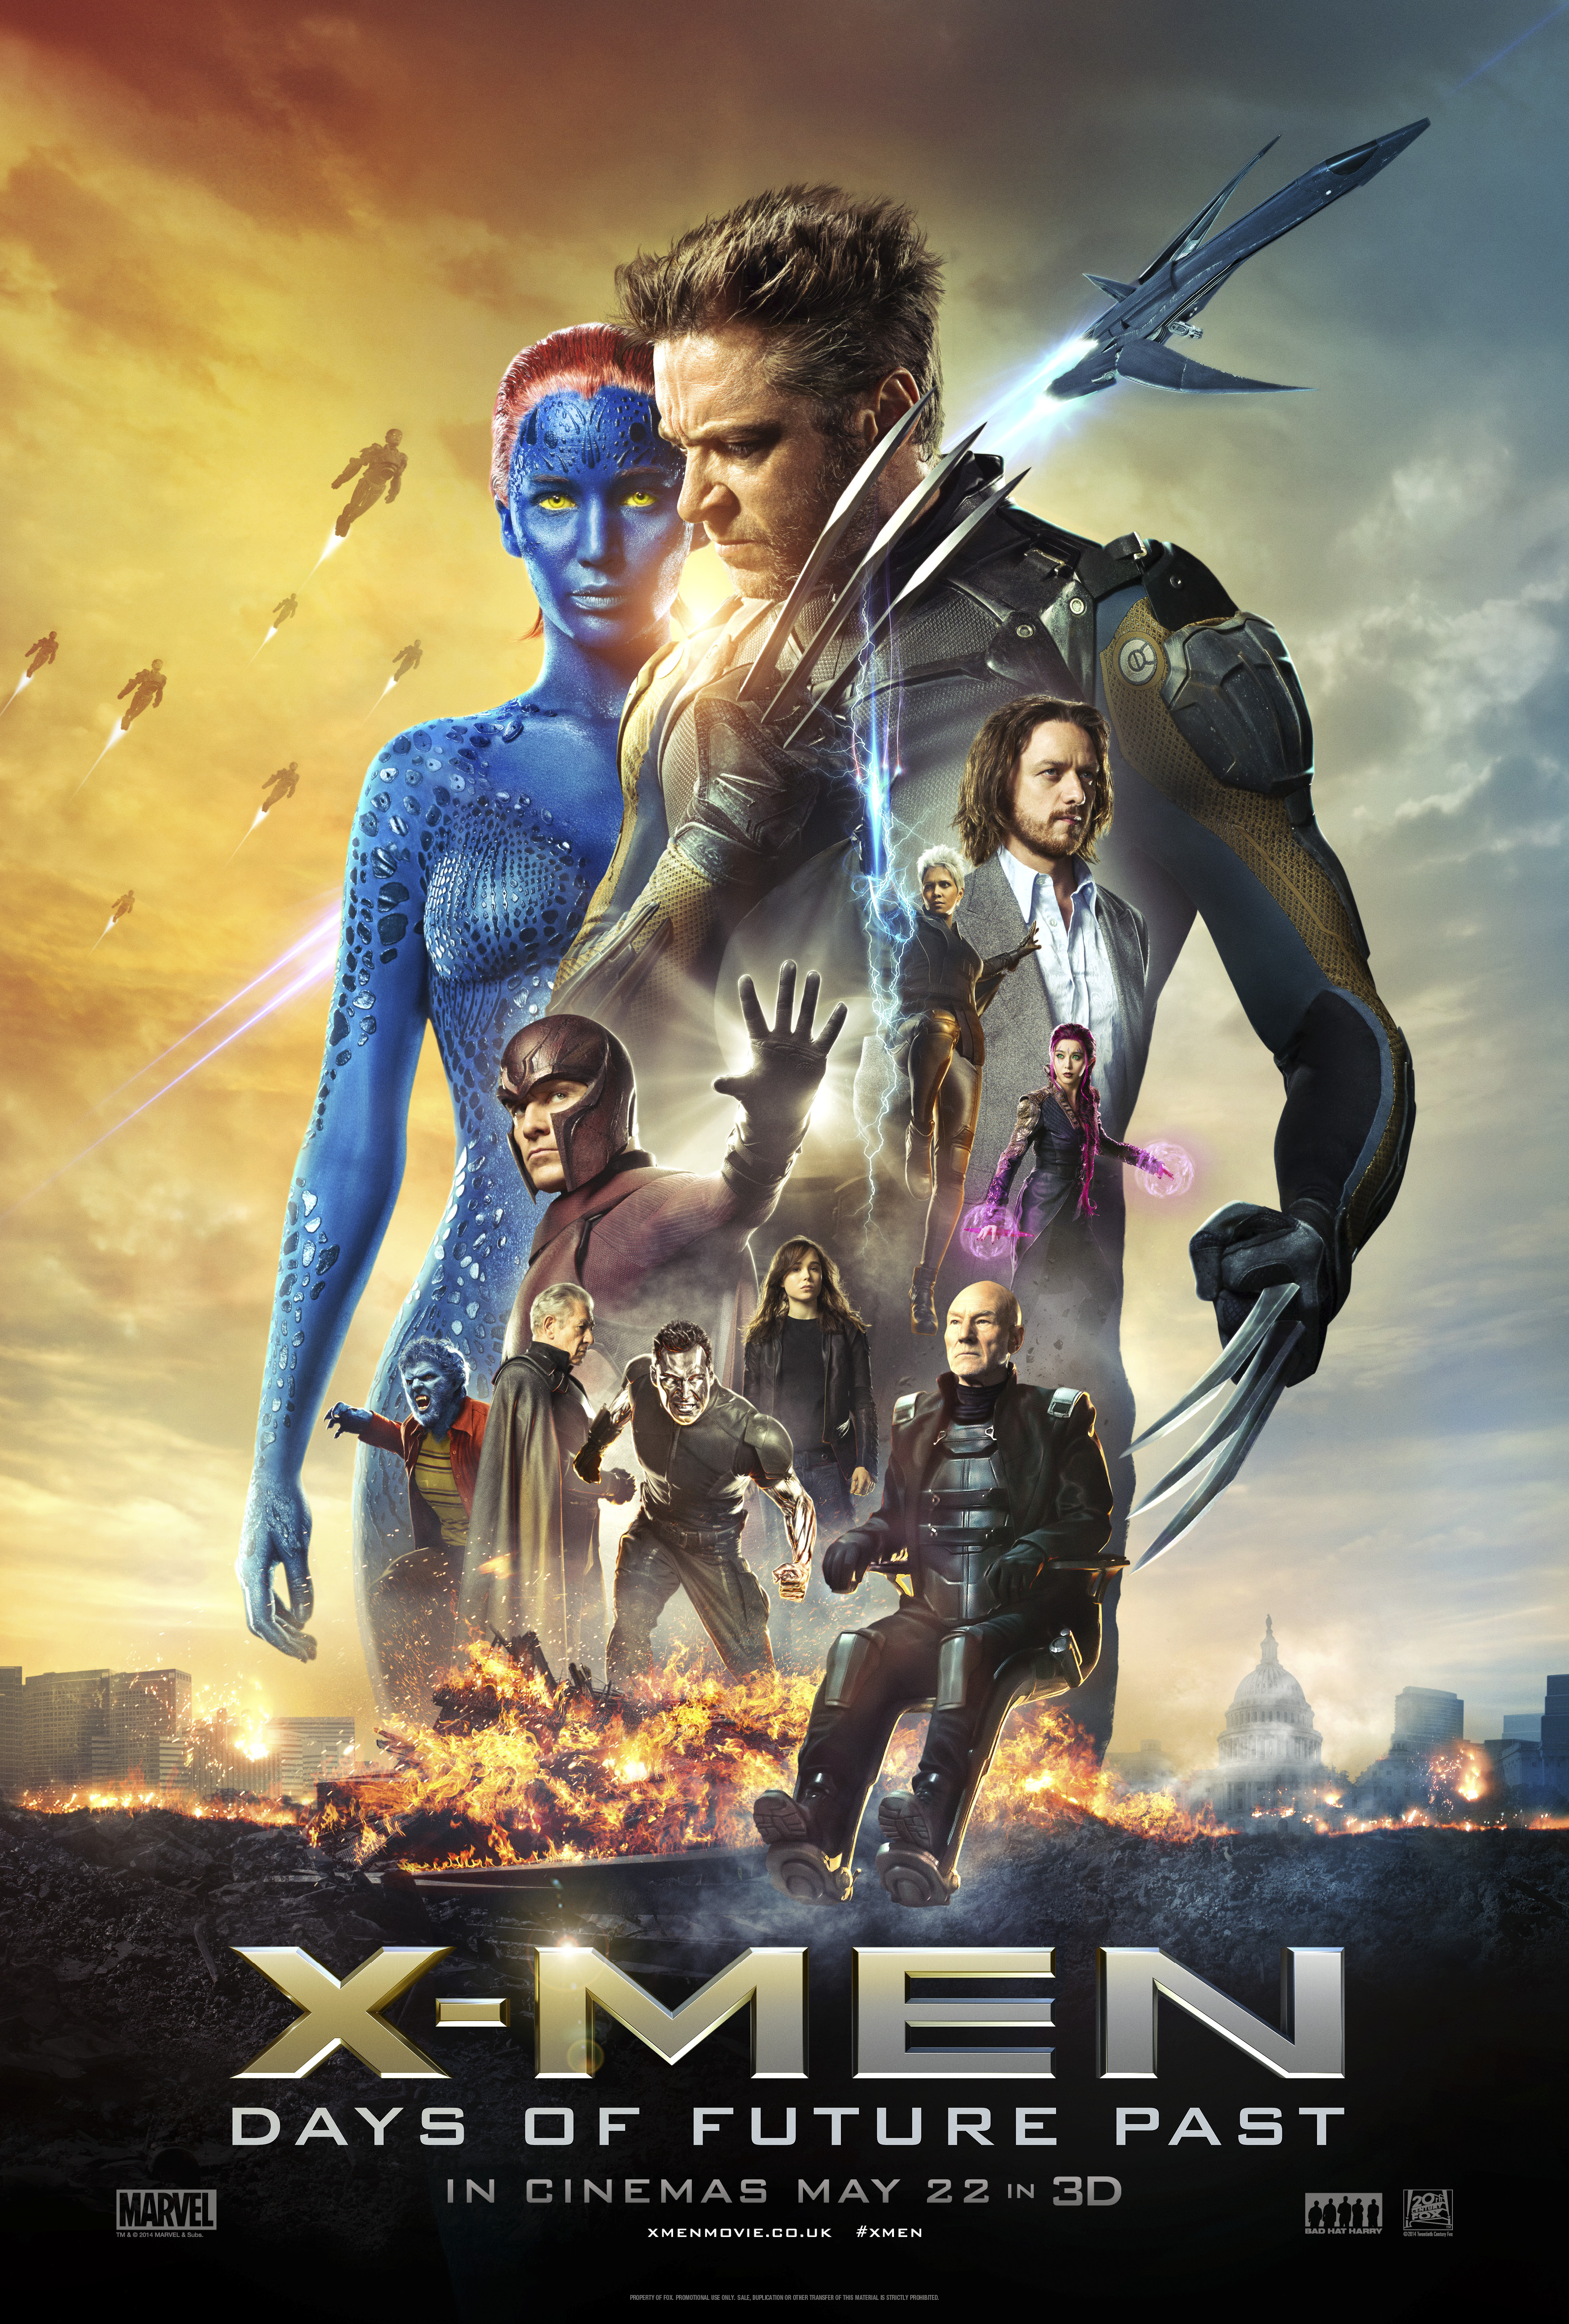 http://vignette1.wikia.nocookie.net/xmenmovies/images/7/79/X-Men_Days_of_Future_Past_Official_poster_004.jpg/revision/latest?cb=20140324234813